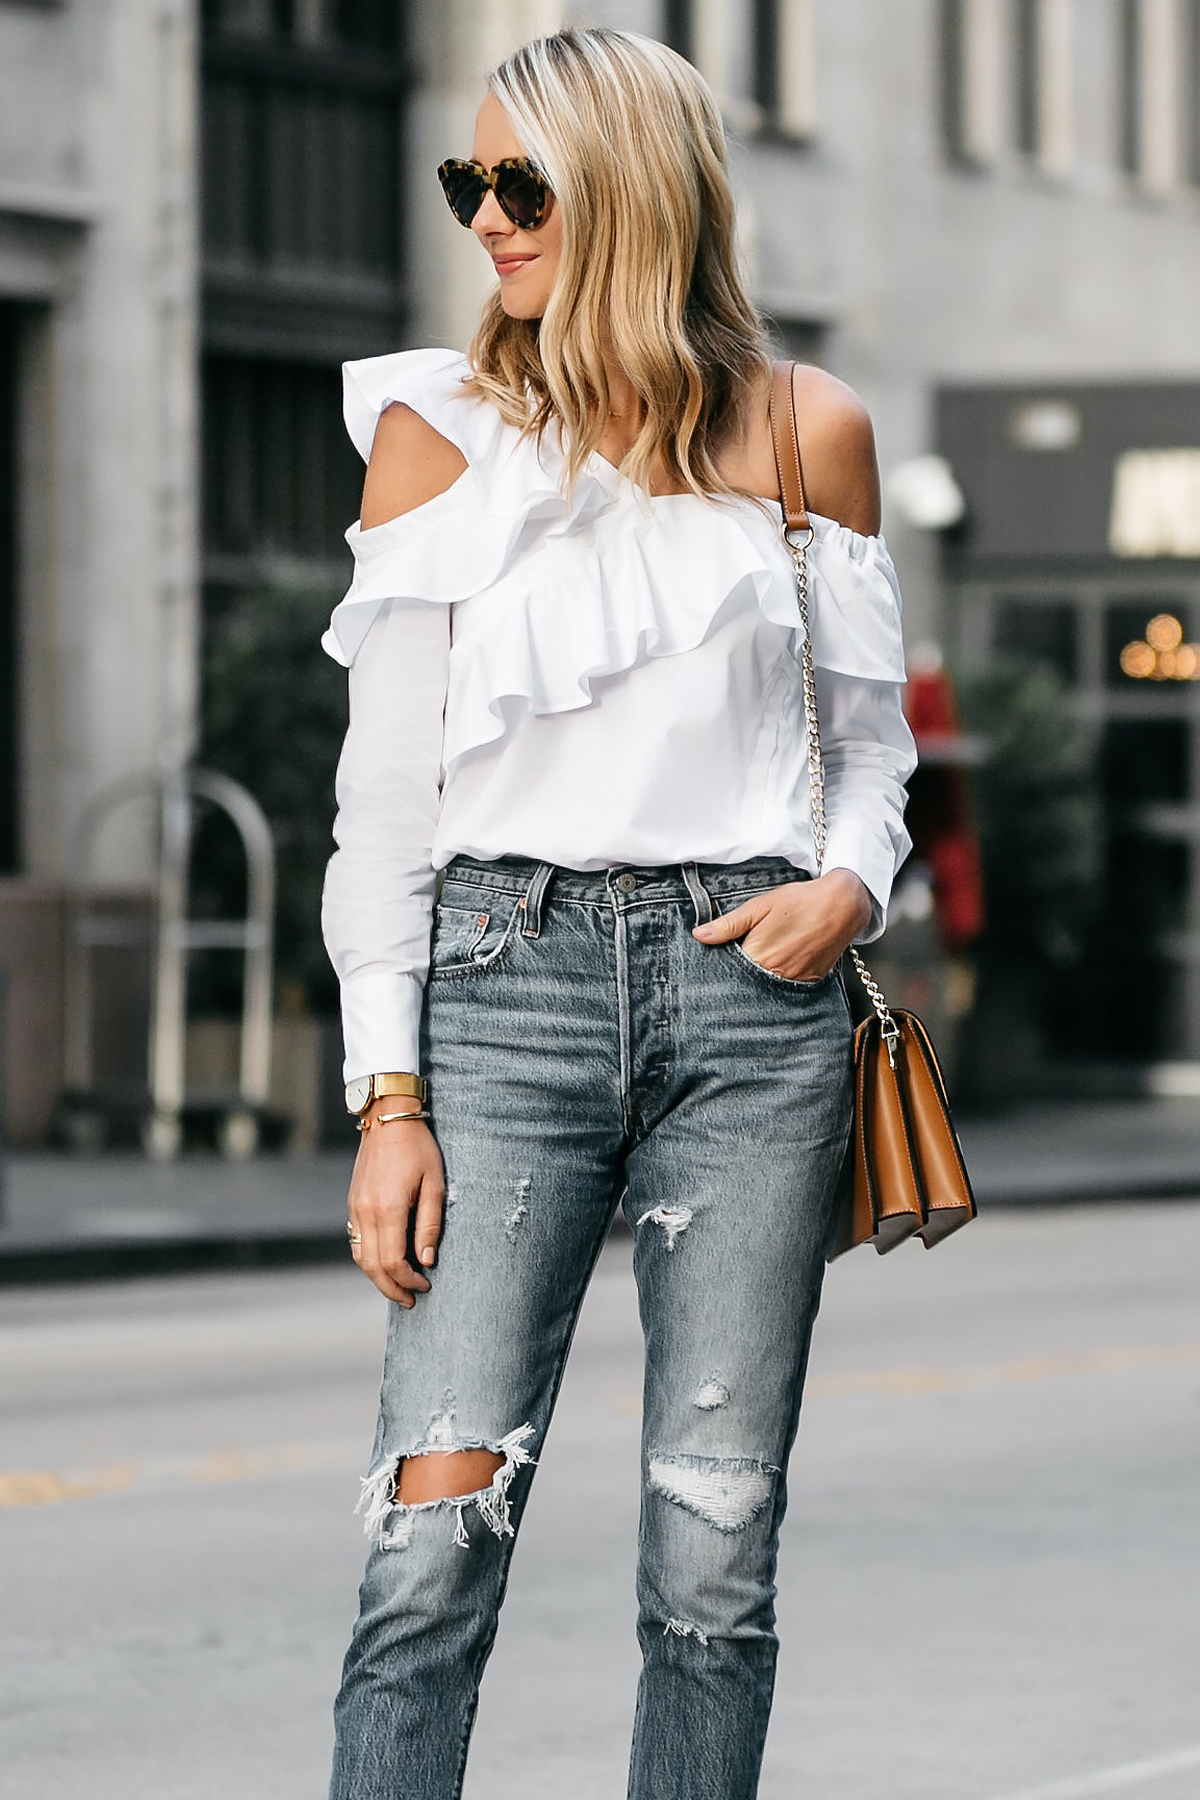 Blonde Woman Wearing Shopbop White Asymmetrical Ruffle Top Levis Denim Ripped Skinny Jeans Street Style Dallas Blogger Fashion Blogger